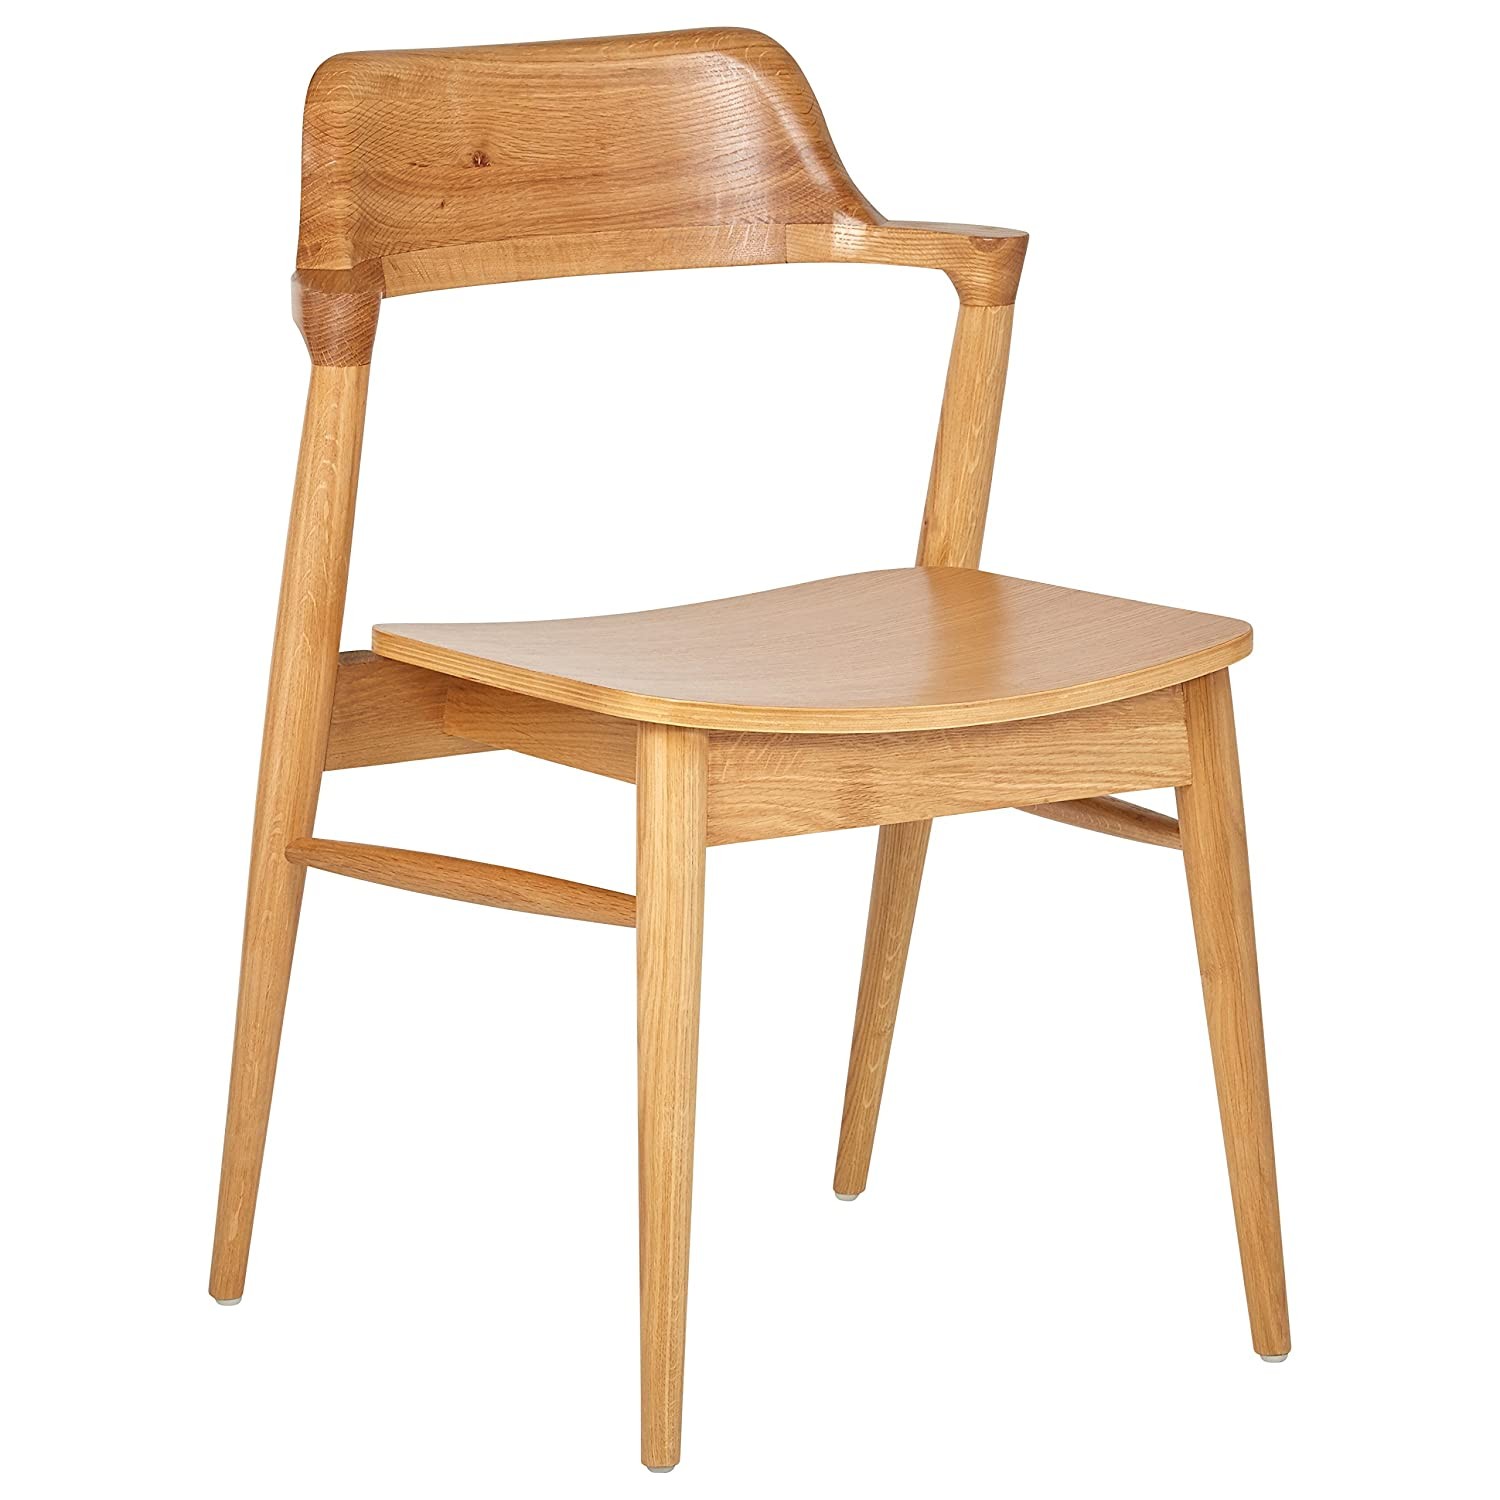 Amazoncom Rivet Mid Century Modern Wood Dining Chair 30h